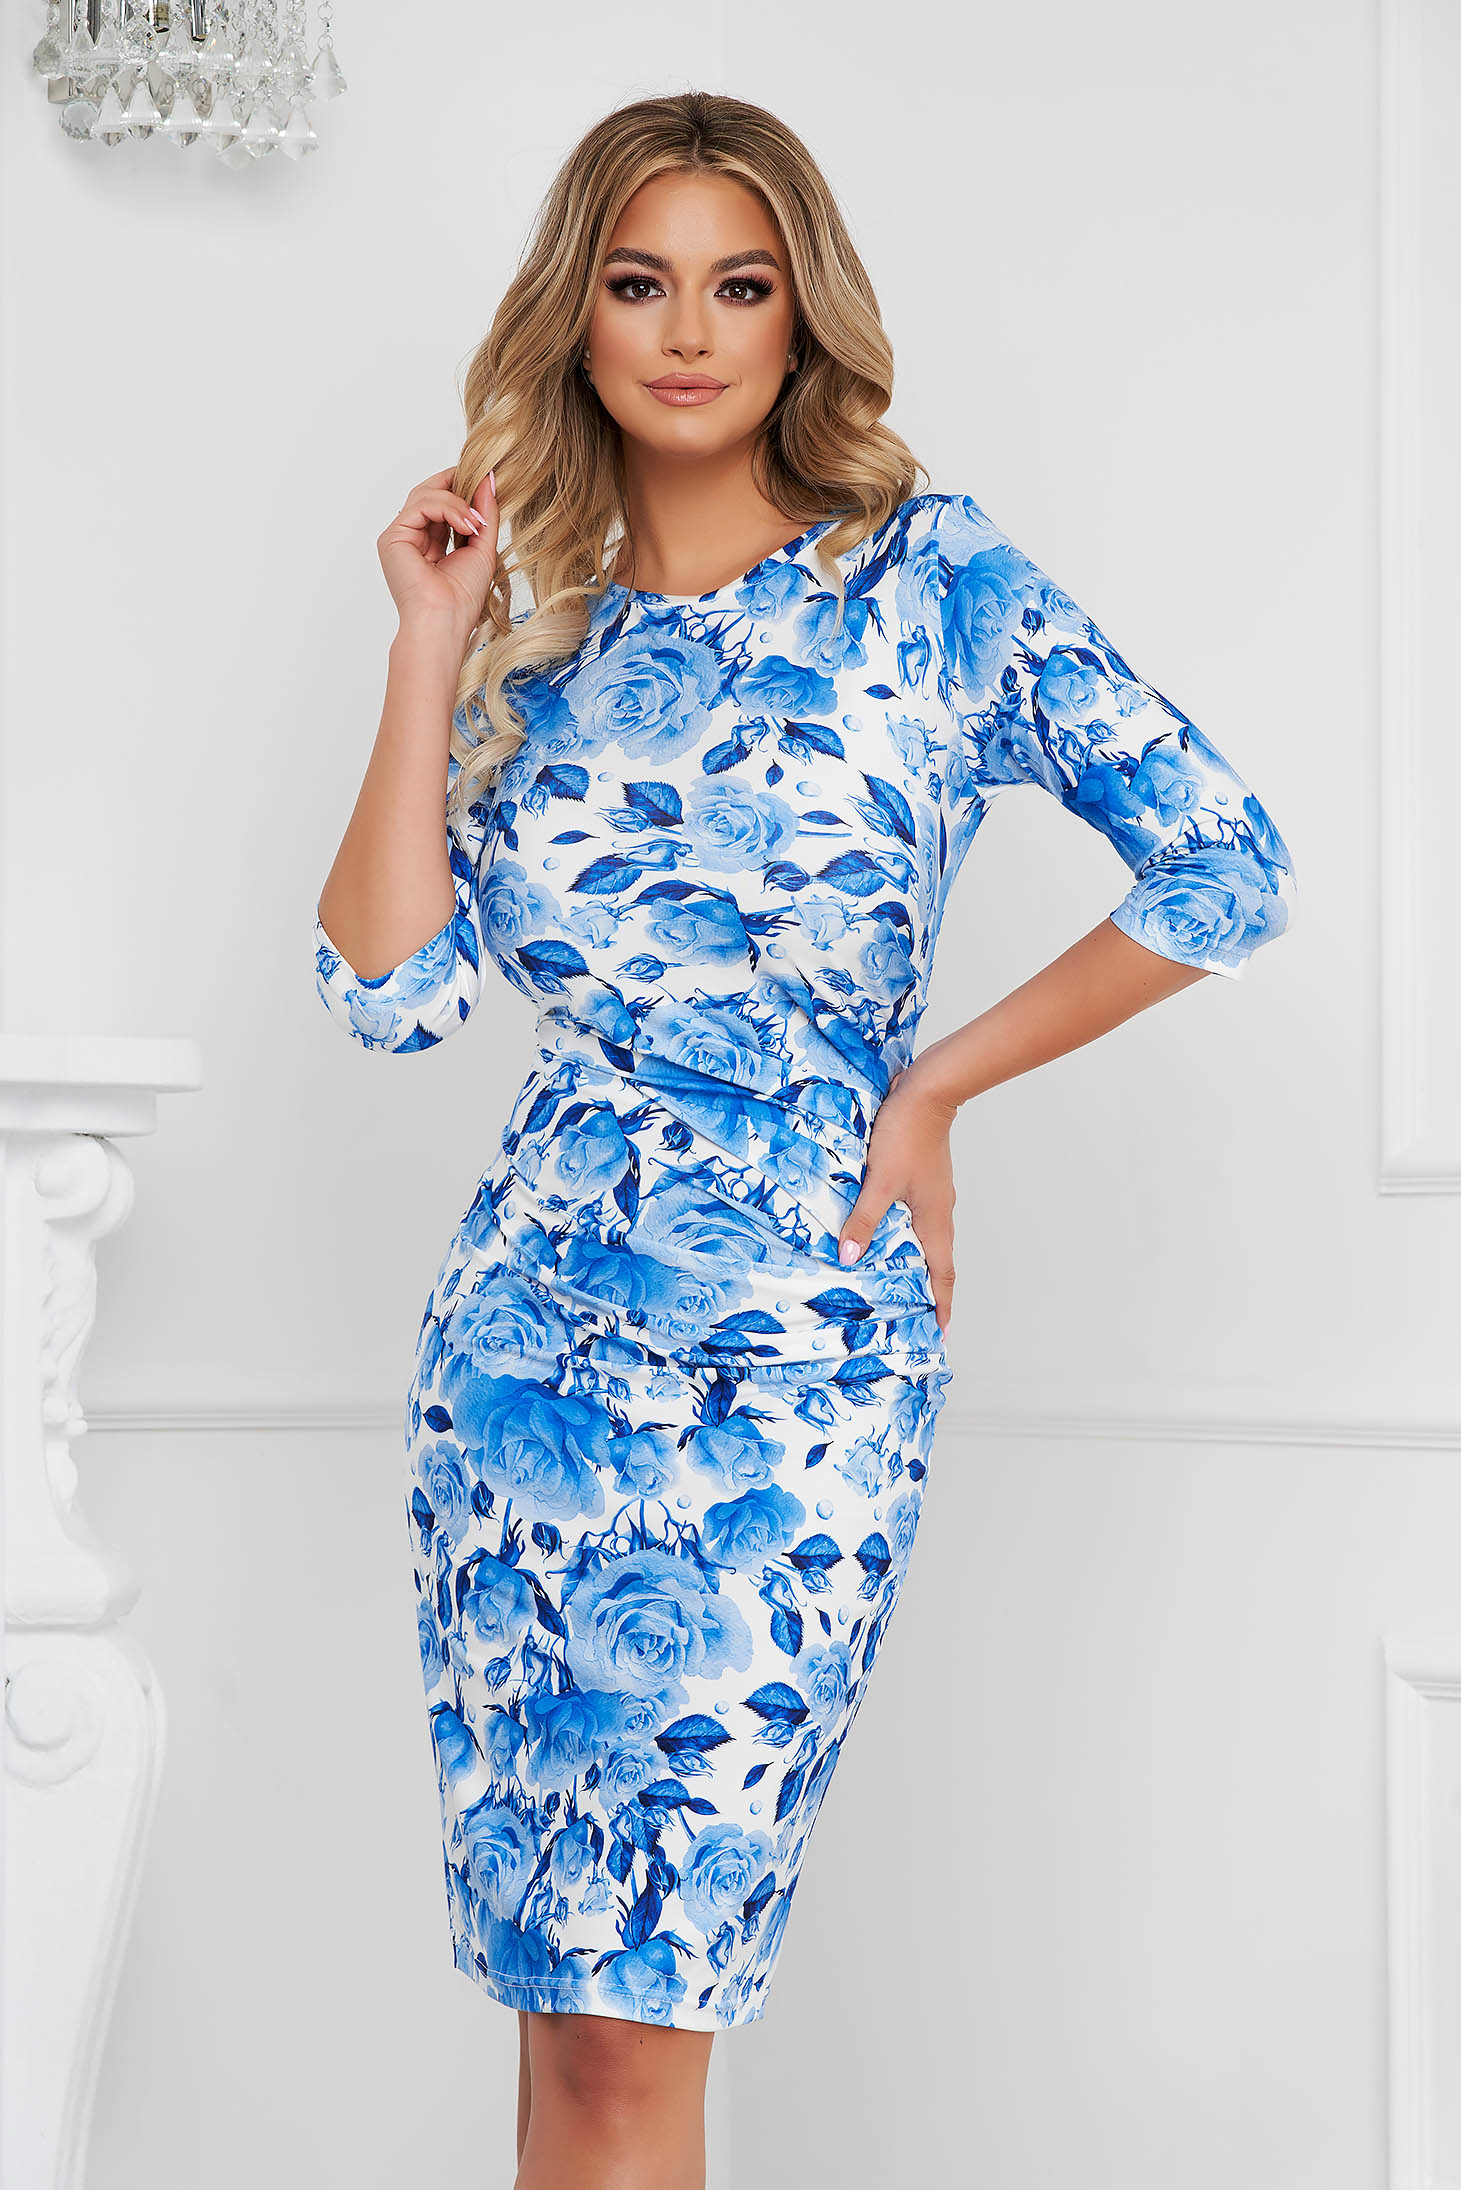 Rochie StarShinerS office midi tip creion din material elastic usor incretit in lateral si imprimeu floral unic